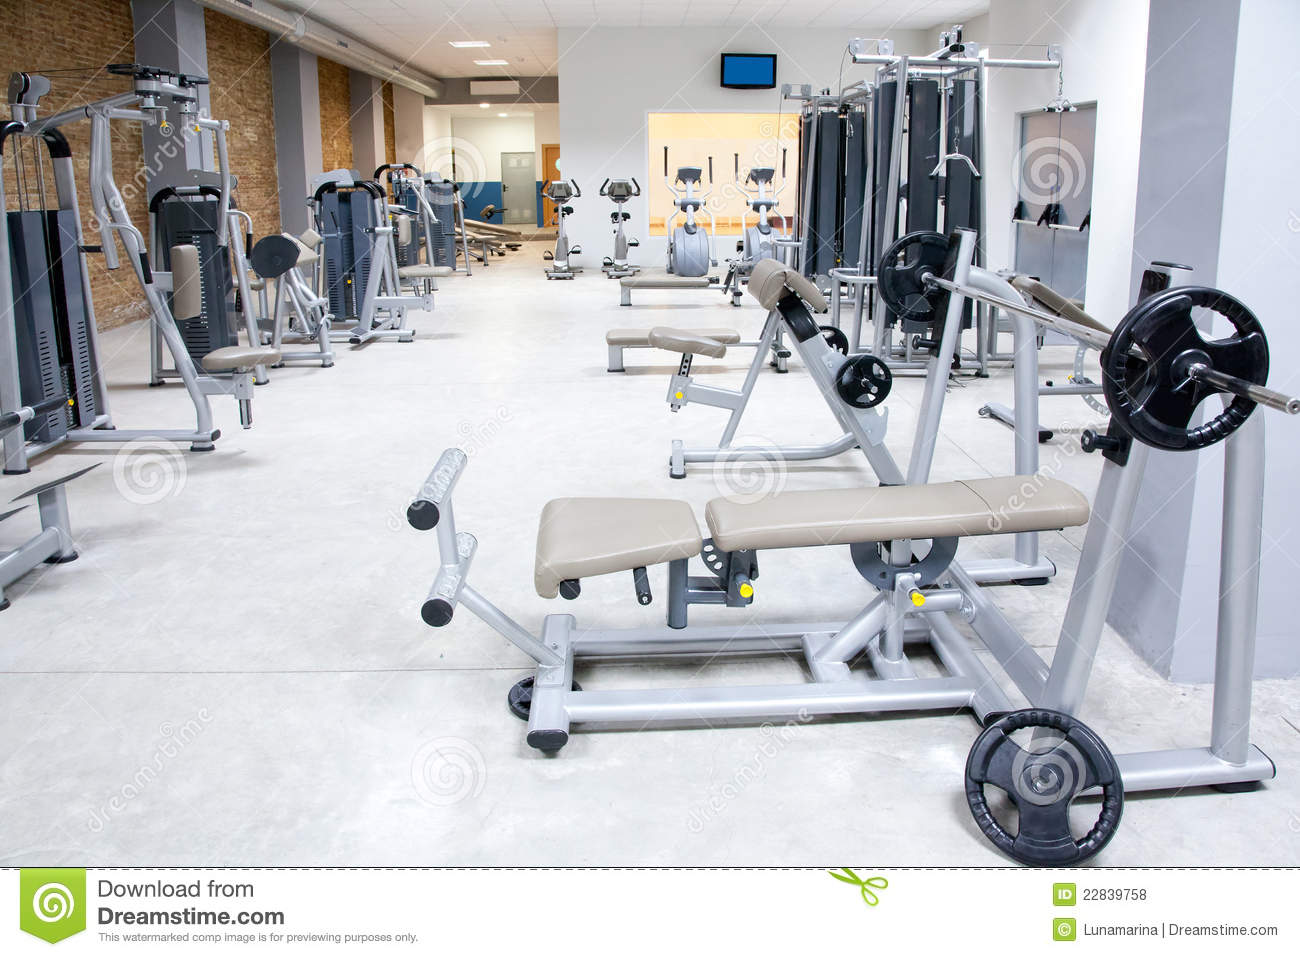 Fitness club gym with sport equipment interior royalty for Gimnasio fitness club